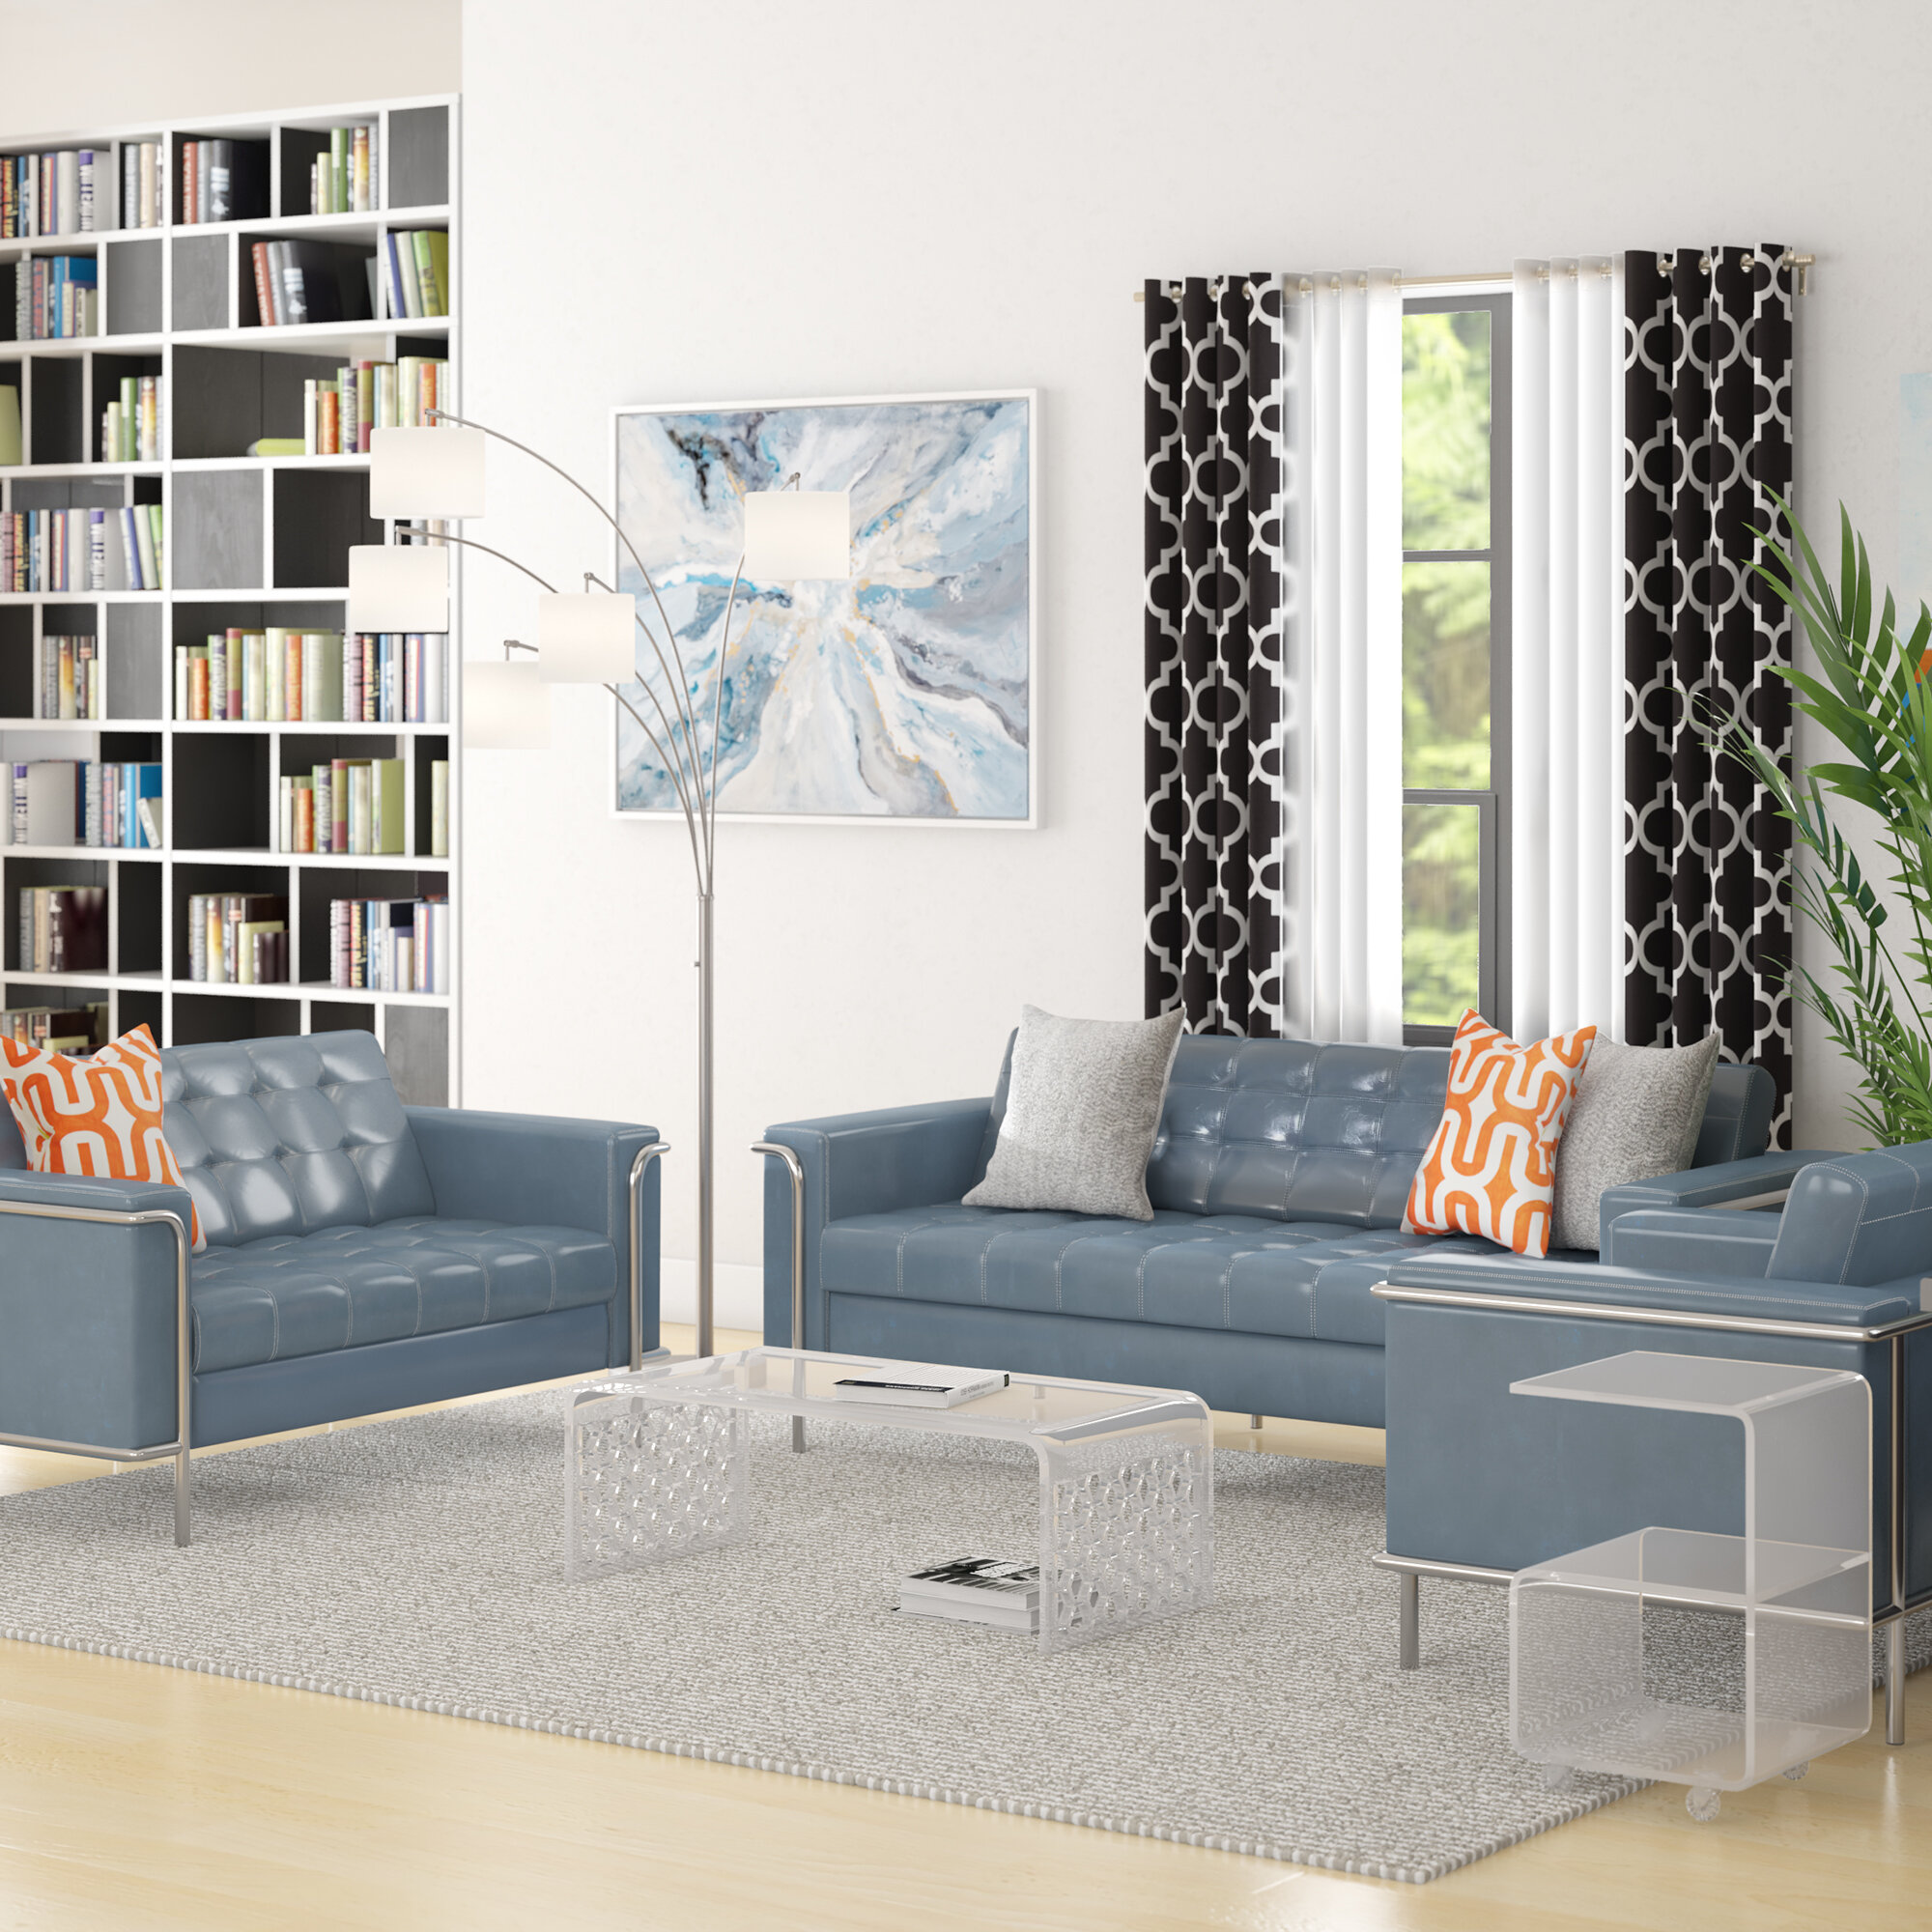 Merveilleux Brayden Studio Boggs Reception 3 Piece Furniture Sets | Wayfair